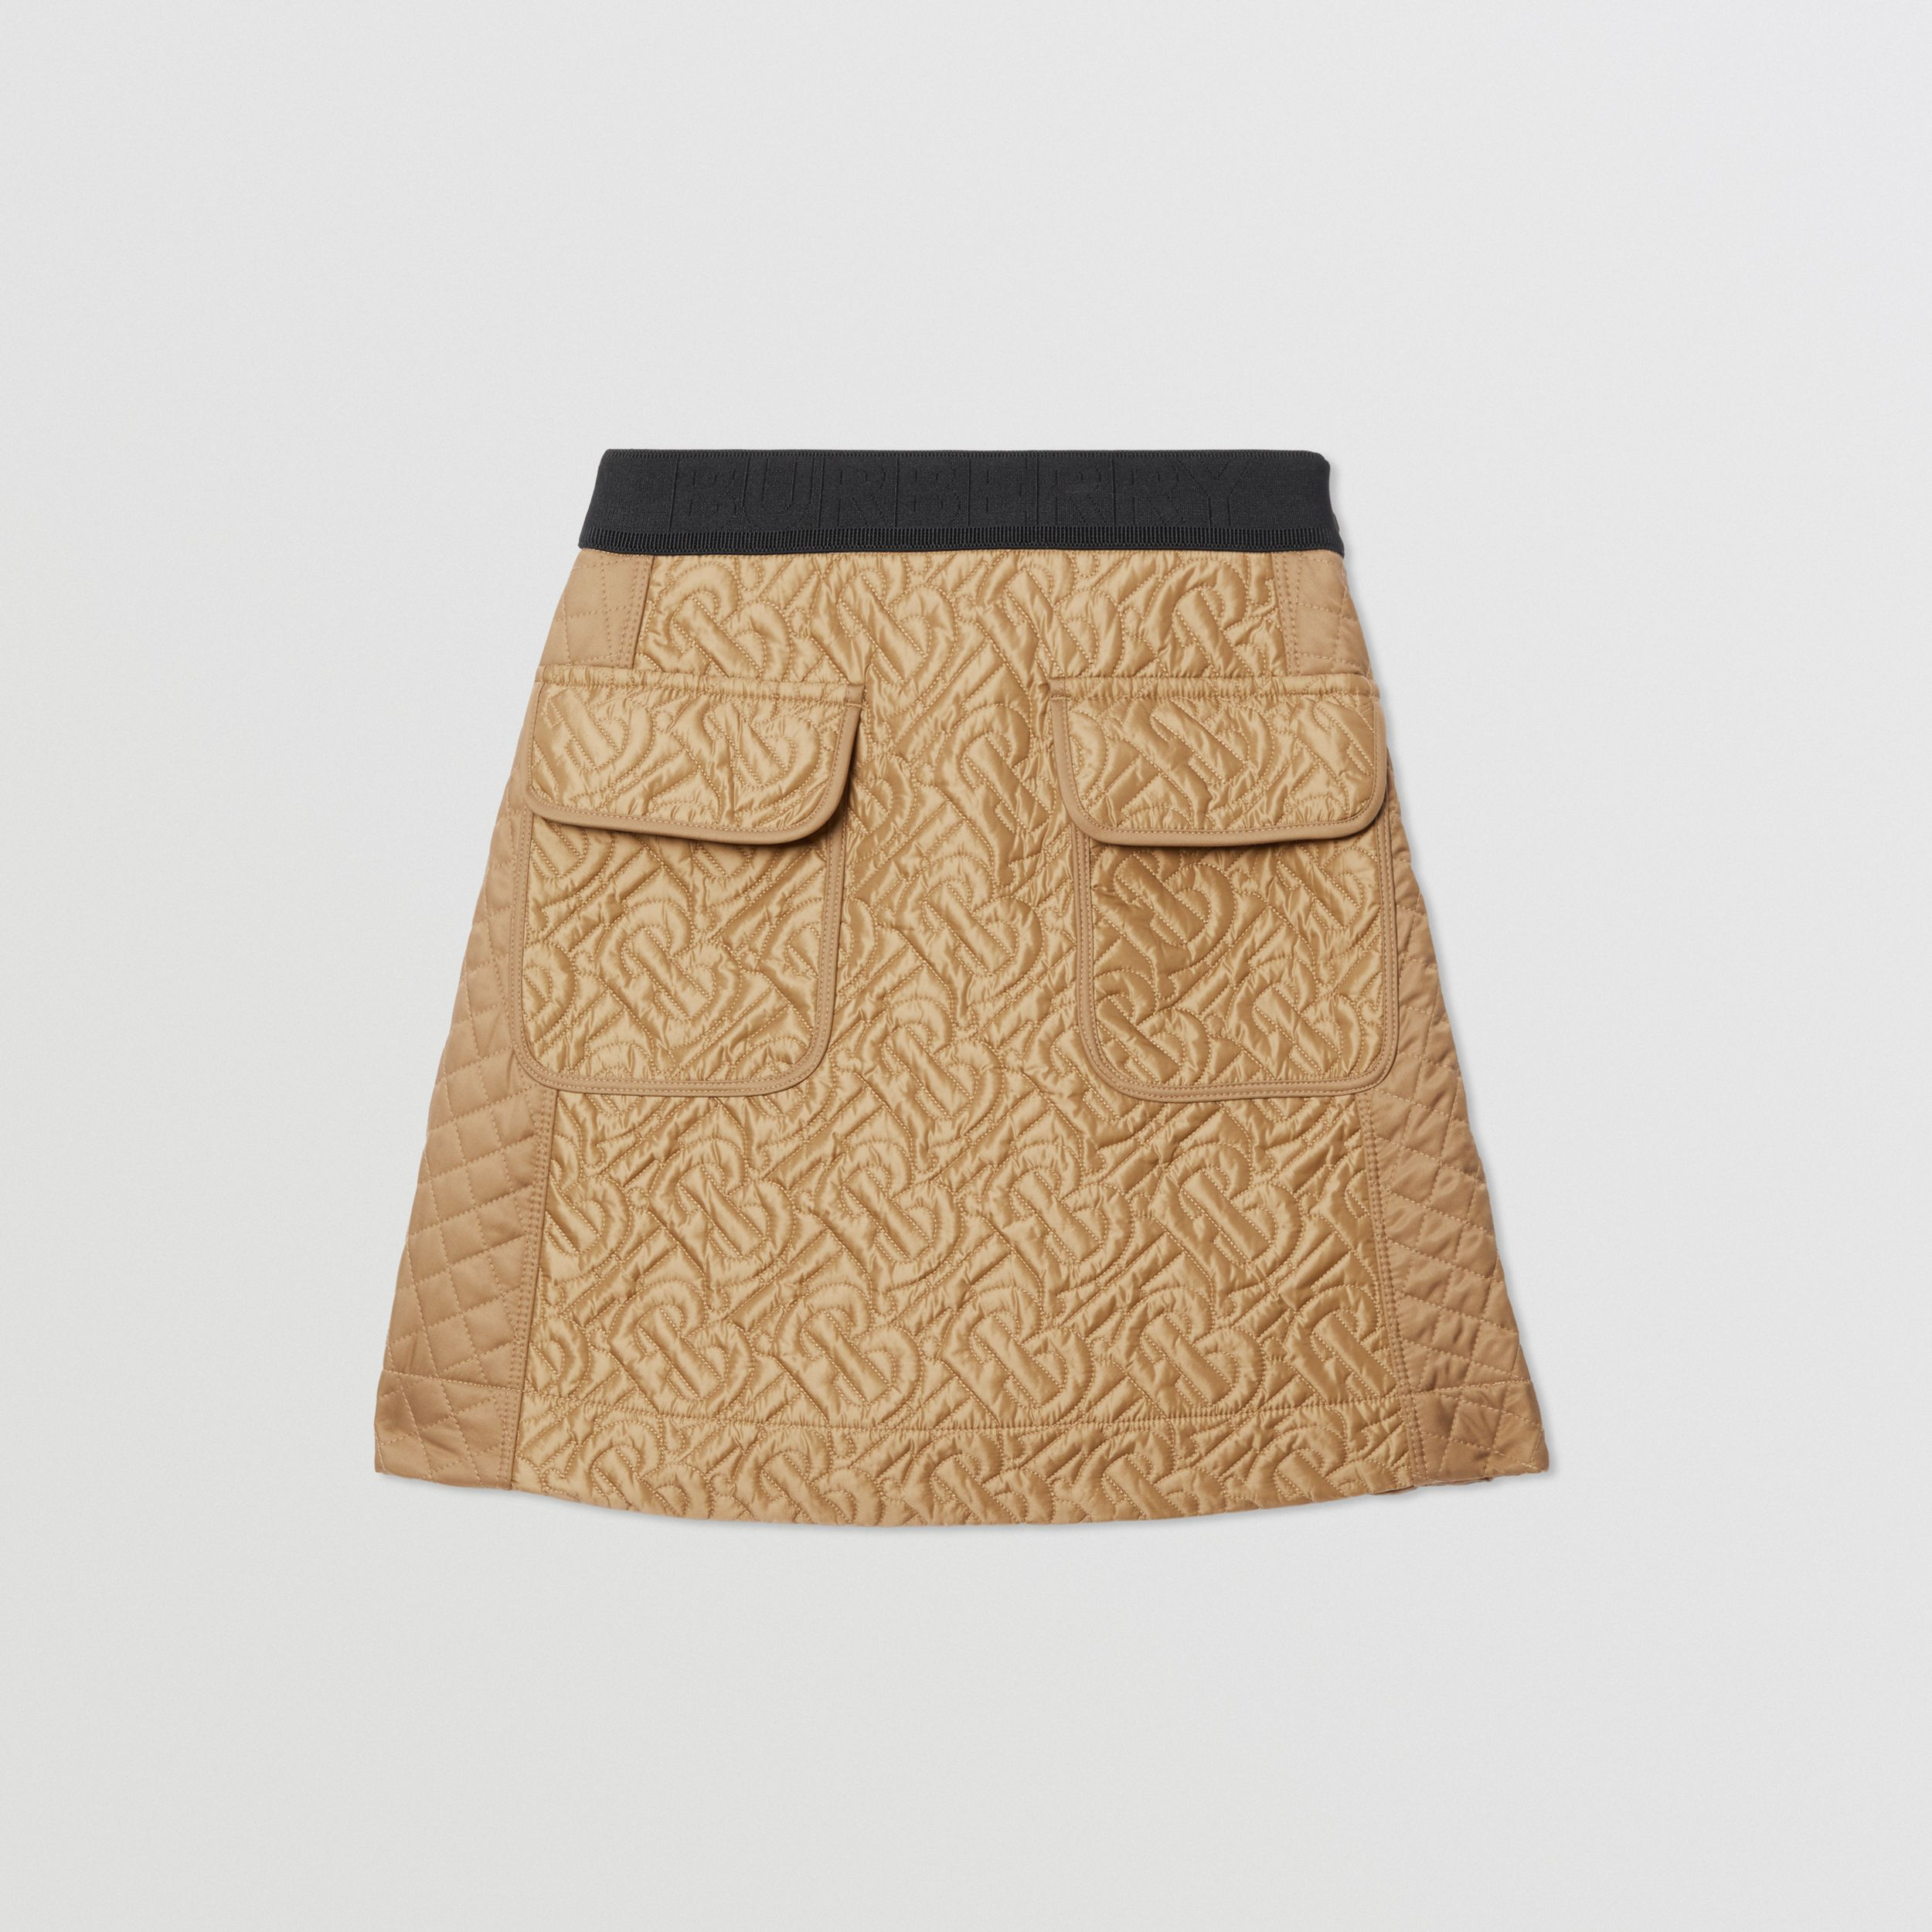 Monogram Quilted Panel Recycled Polyester Skirt in Honey | Burberry - 1